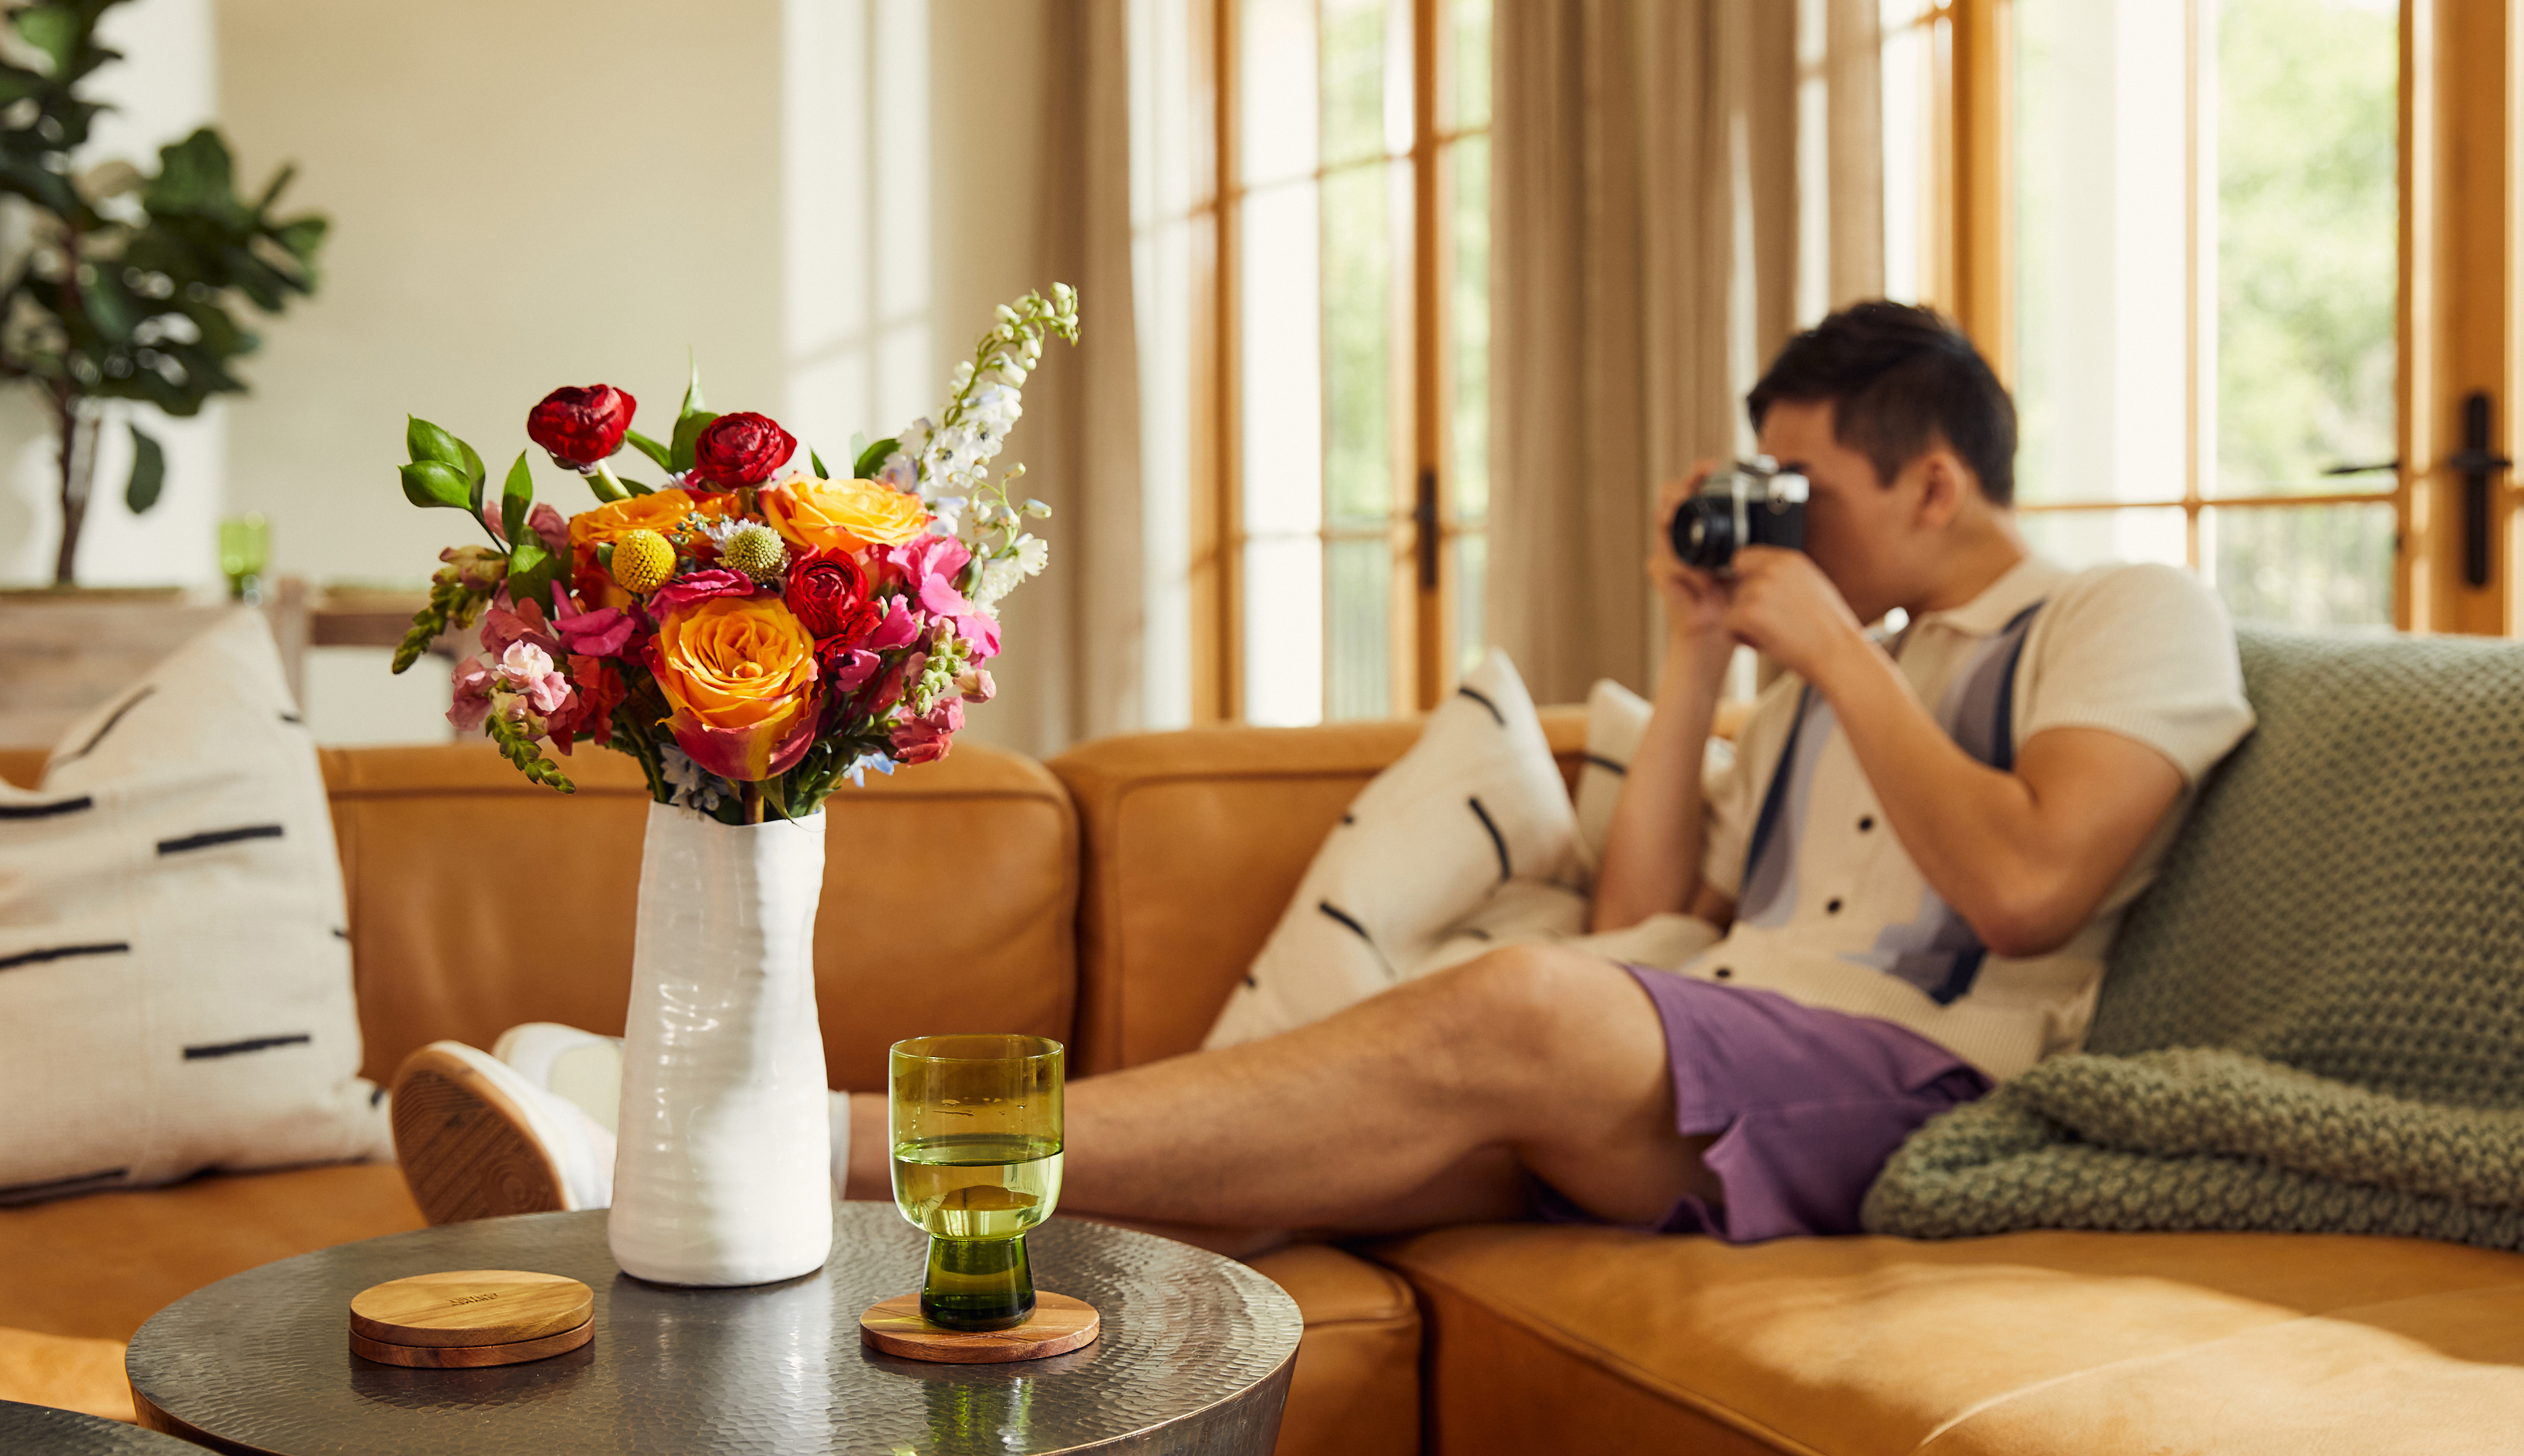 Man relaxing on a couch with a bouquet fo fresh flowers on the coffee table